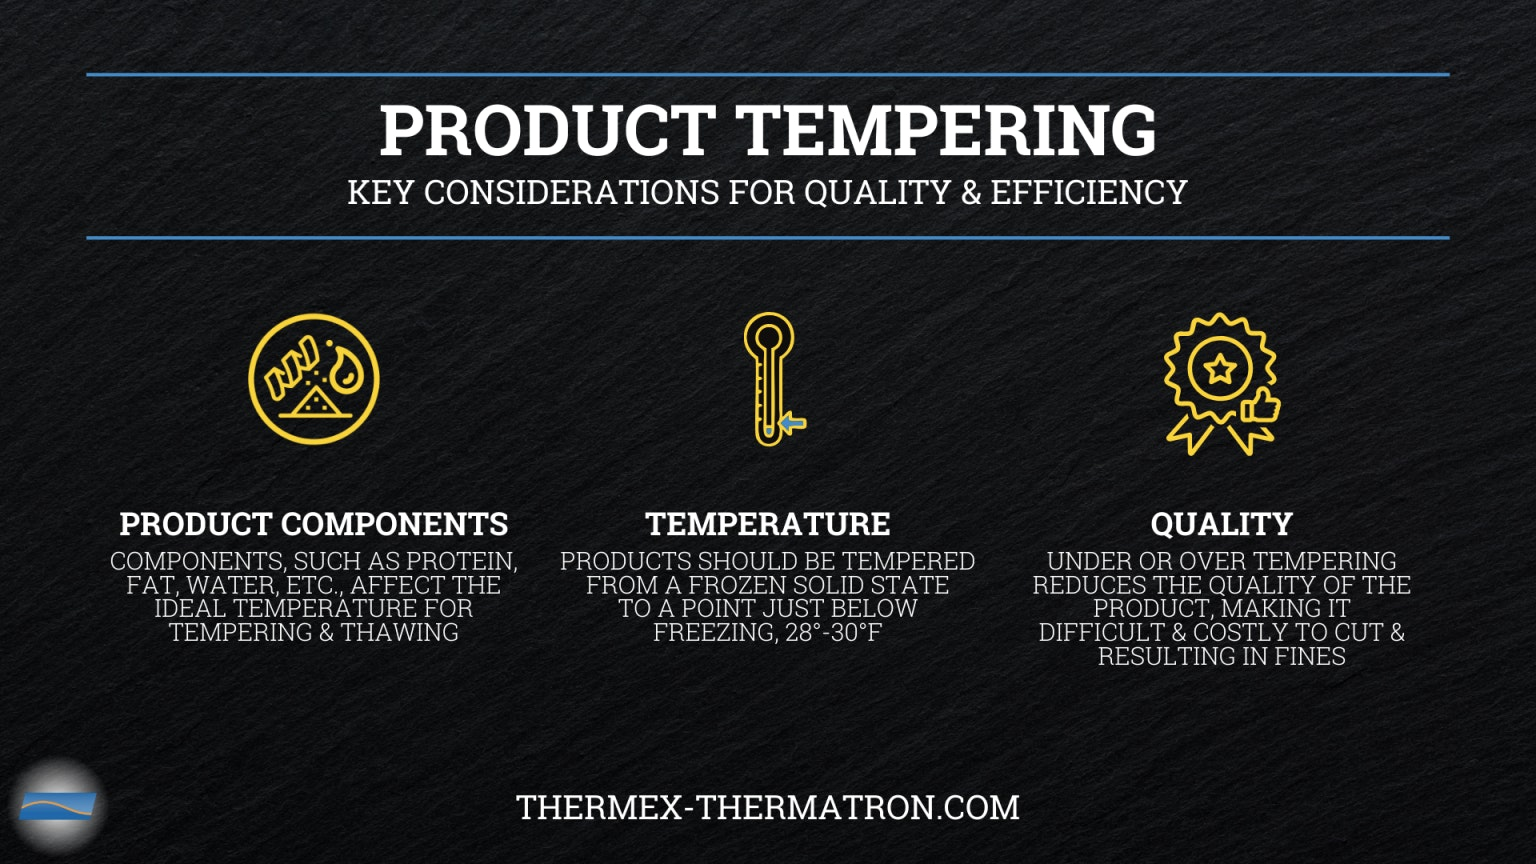 Considerations For Product Tempering 1536x864